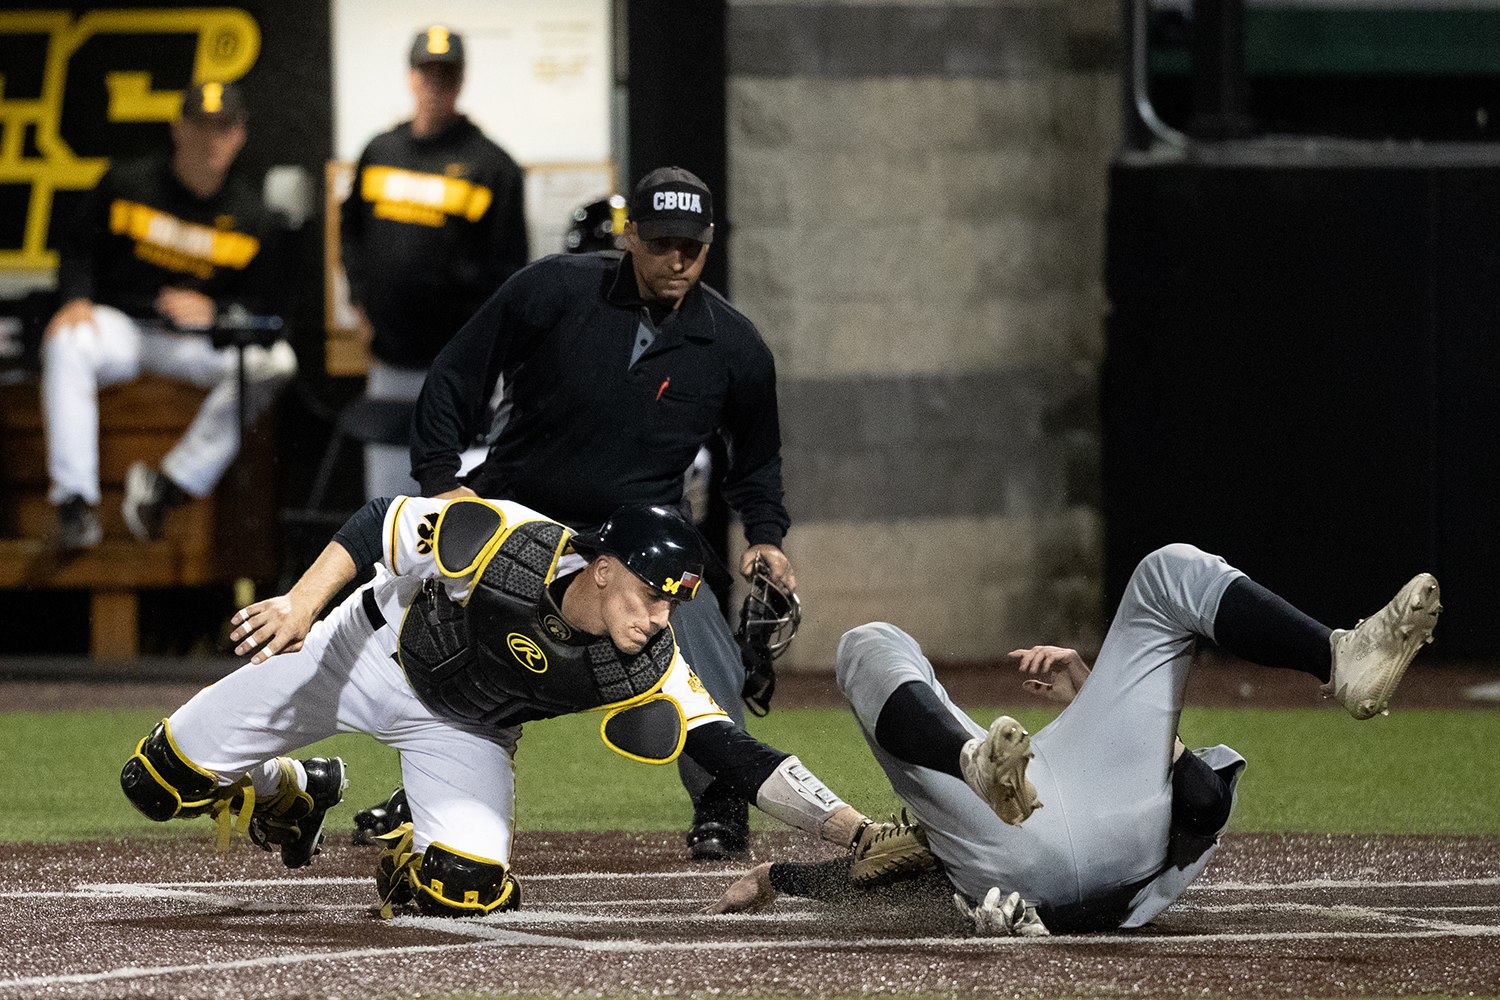 Iowa+catcher+Austin+Martin+tags+out++Milwaukee+catcher+Tyler+Bordner+during+the+baseball+game+against+Milwaukee+at+Duane+Banks+Field+on+Tuesday%2C+April+23%2C+2019.+The+Hawkeyes+defeated+the+Panthers+5-4.